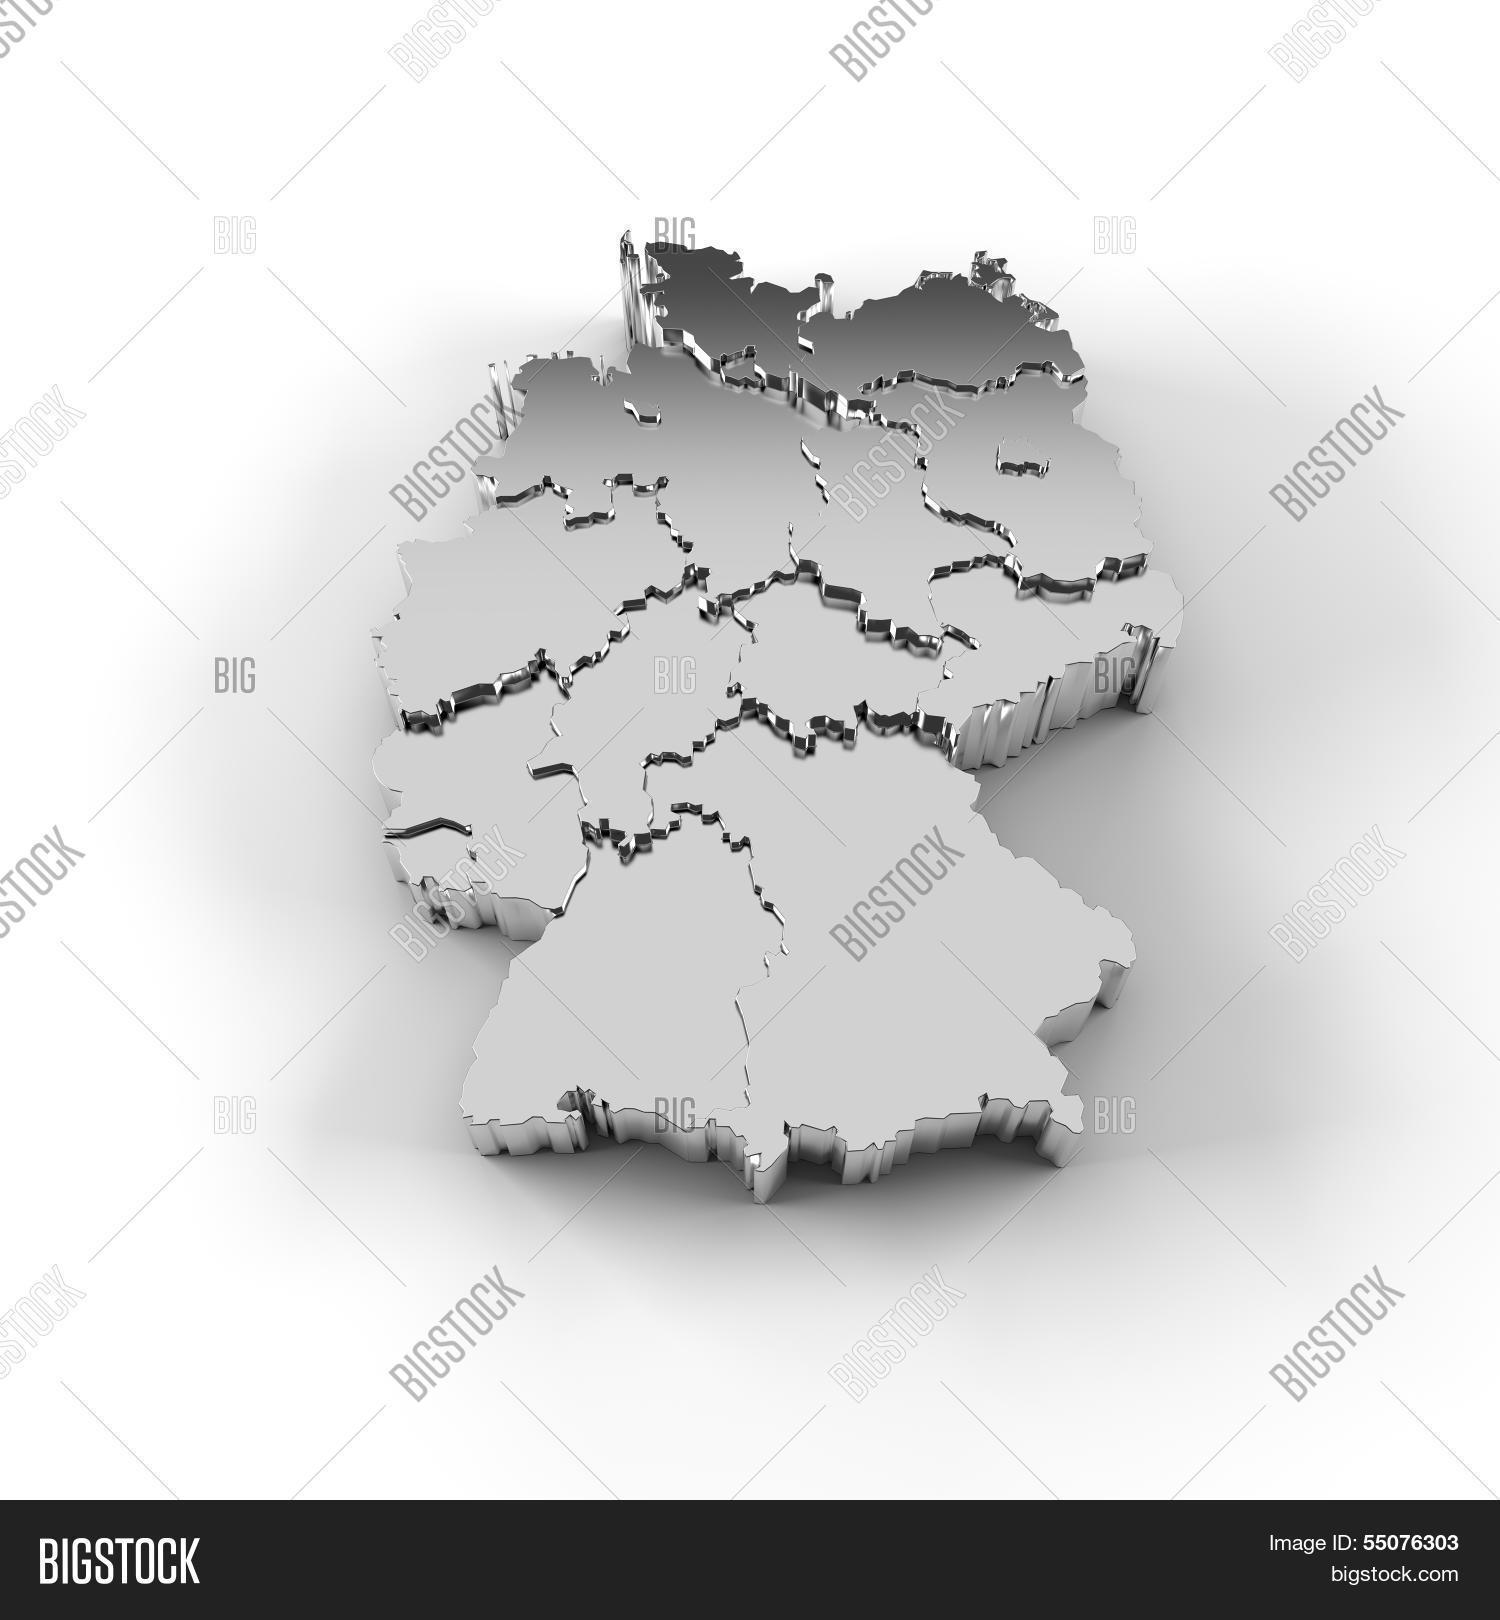 3d,bavaria,beer,berlin,black,border,brd,cartography,central,concept,contour,culture,ddr,democracy,dresden,eu,europe,federal,finance,frankfurt,freedom,geography,germany,grey,hamburg,illustration,investment,map,market,metal,money,munich,nation,peace,people,perspective,province,quality,republic,shadow,shiny,silhouette,silver,state,step,stock,stuttgart,tourism,vacation,wealth,white,winner